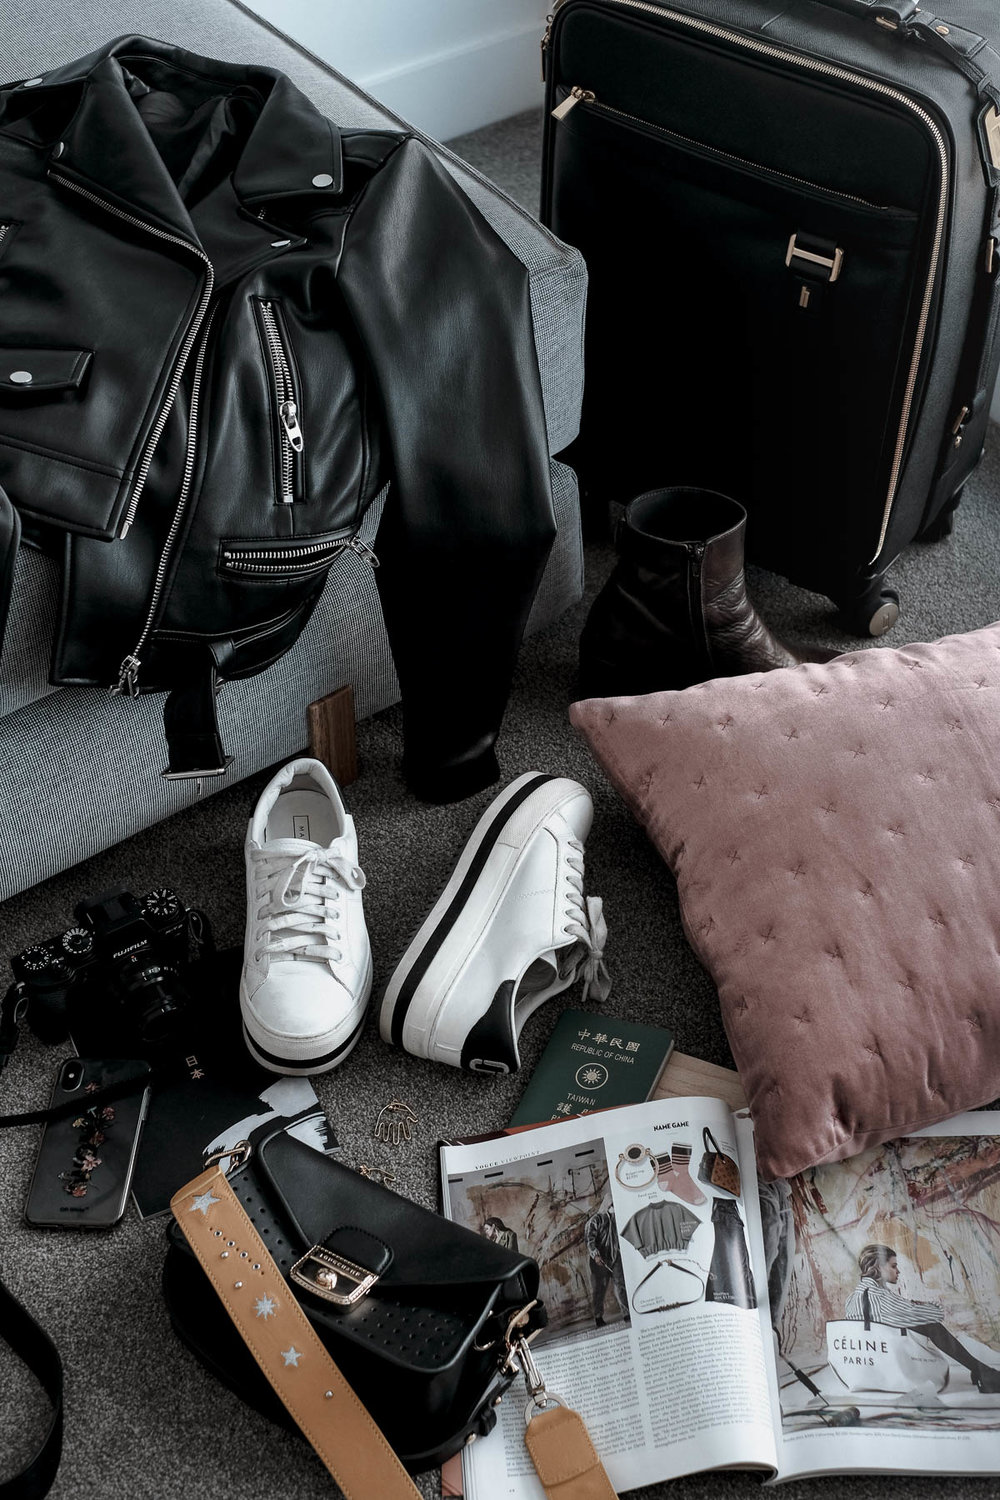 packing for Tokyo by Tiffany yang